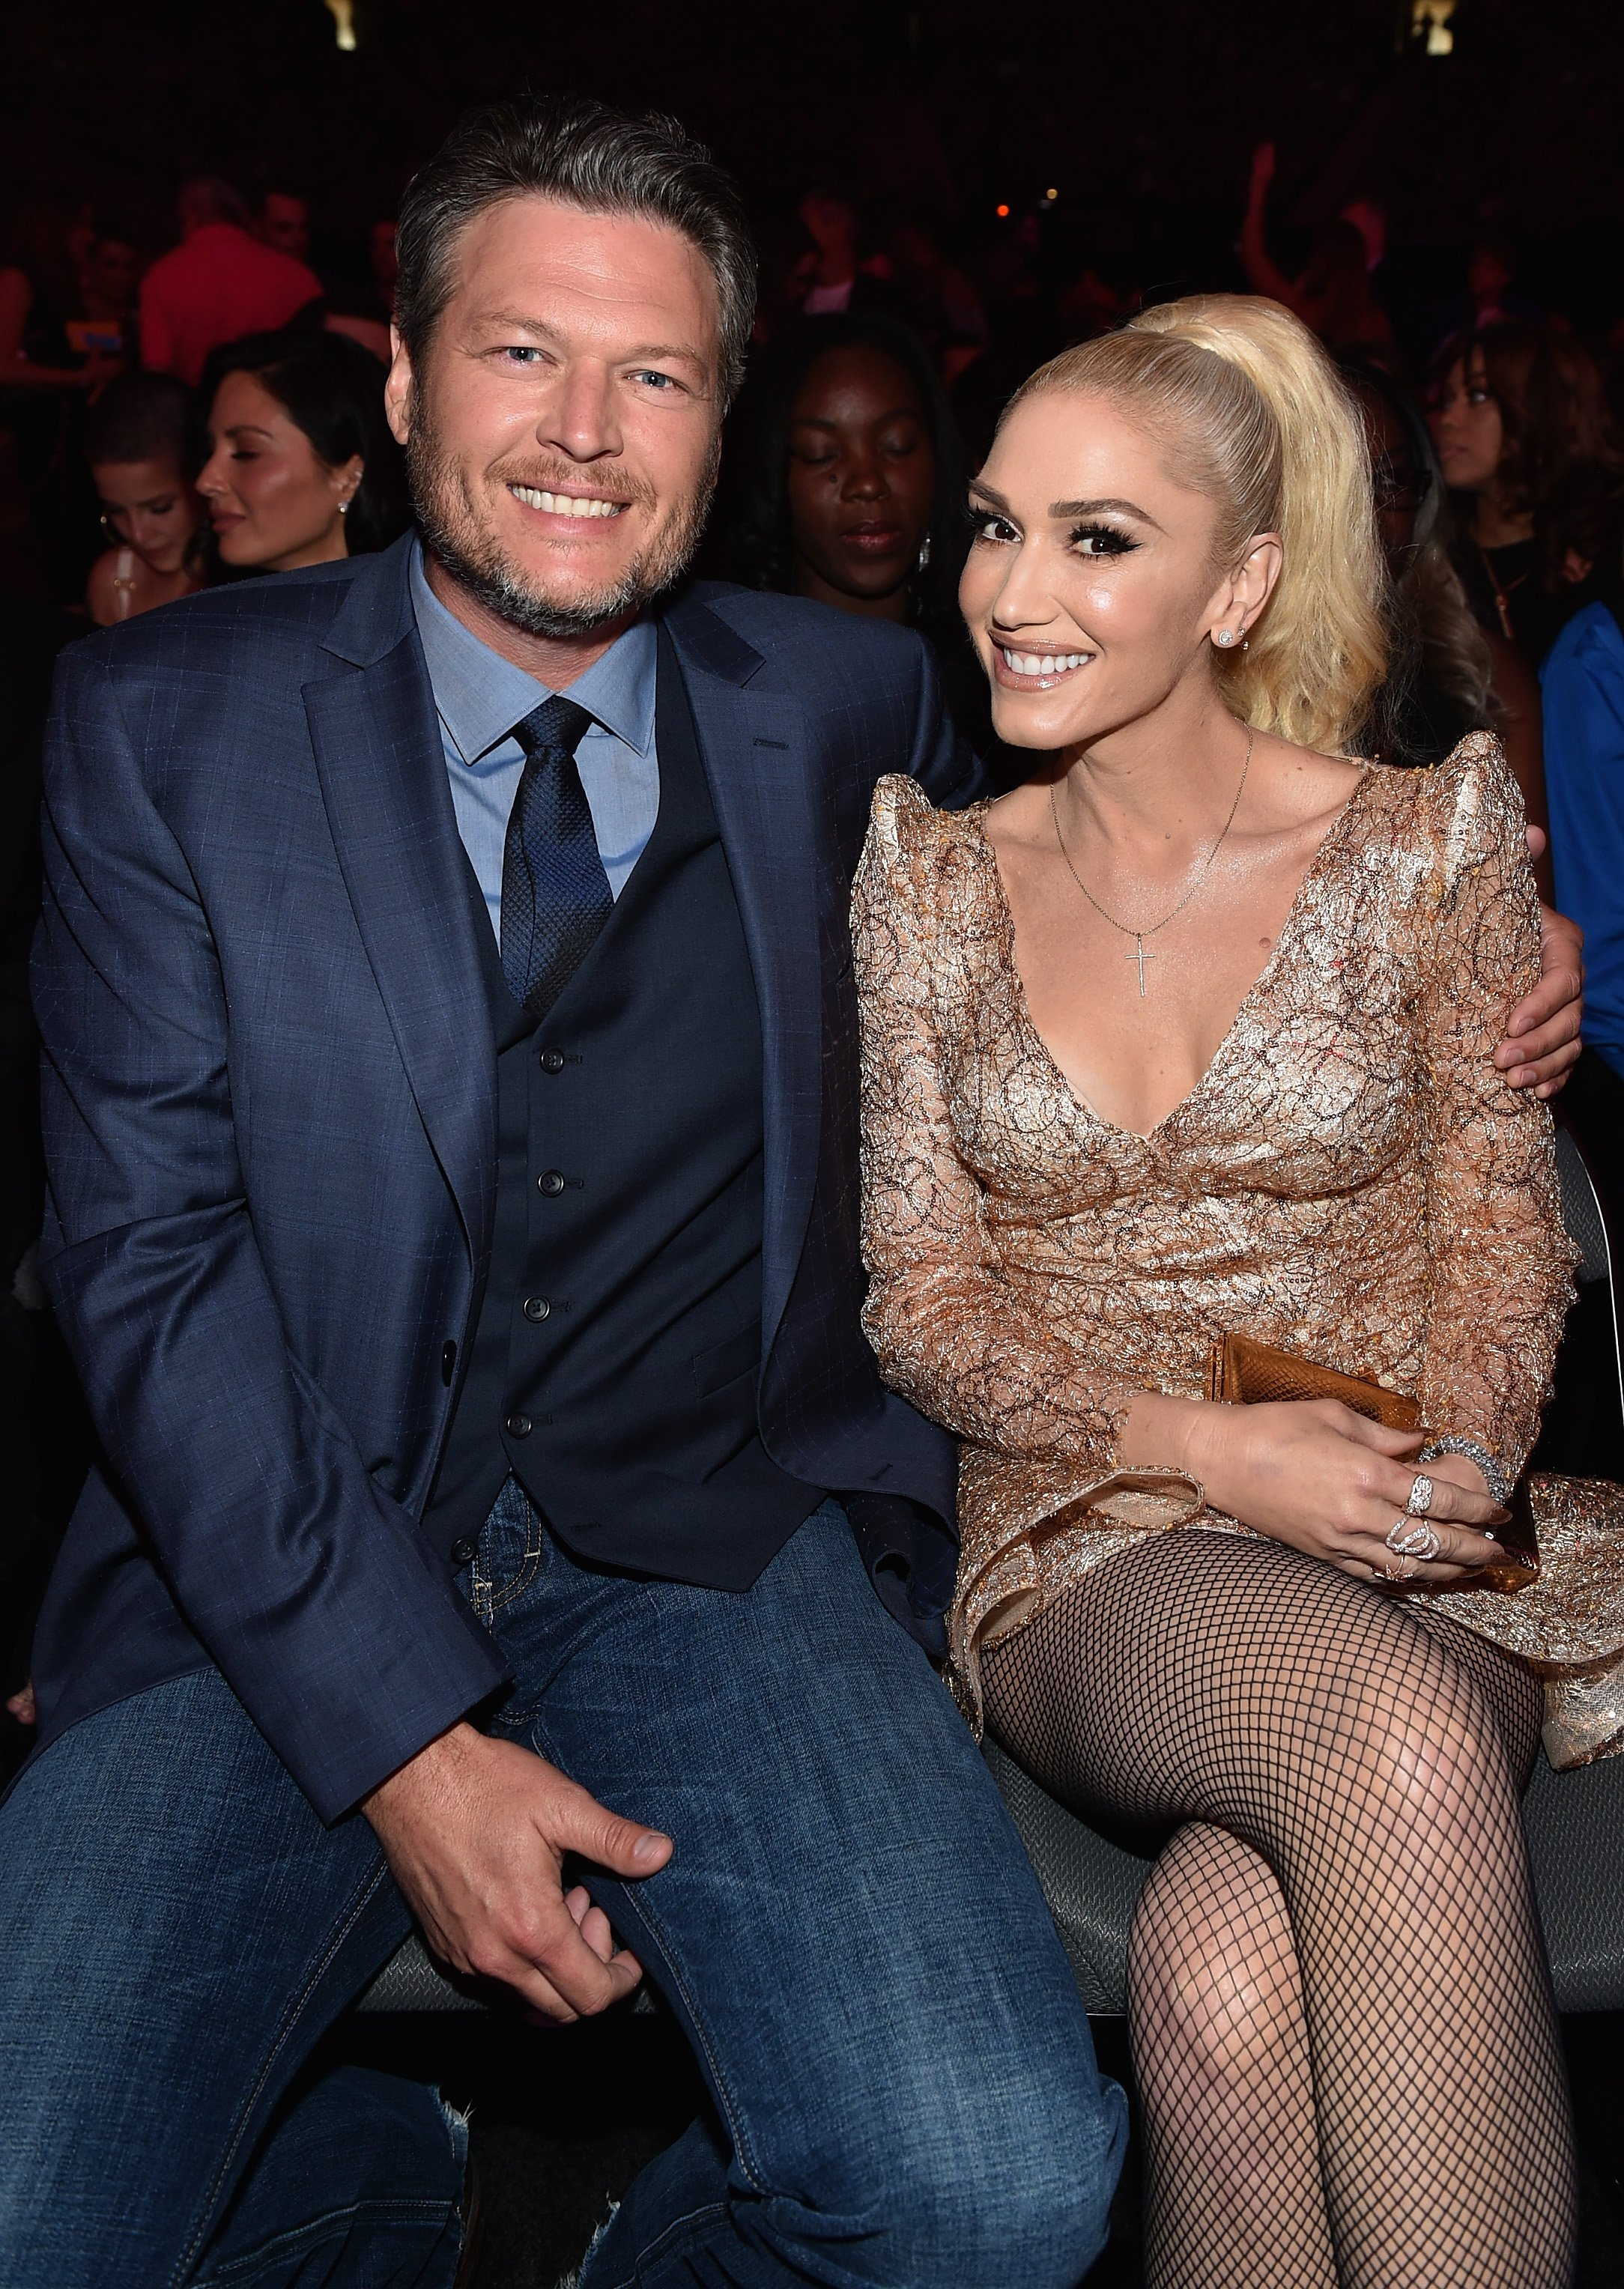 Blake Shelton and Gwen Stefani attend the 2017 Billboard Music Awards on May 21, 2017 in Las Vegas, Nevada. | Source: Getty Images.